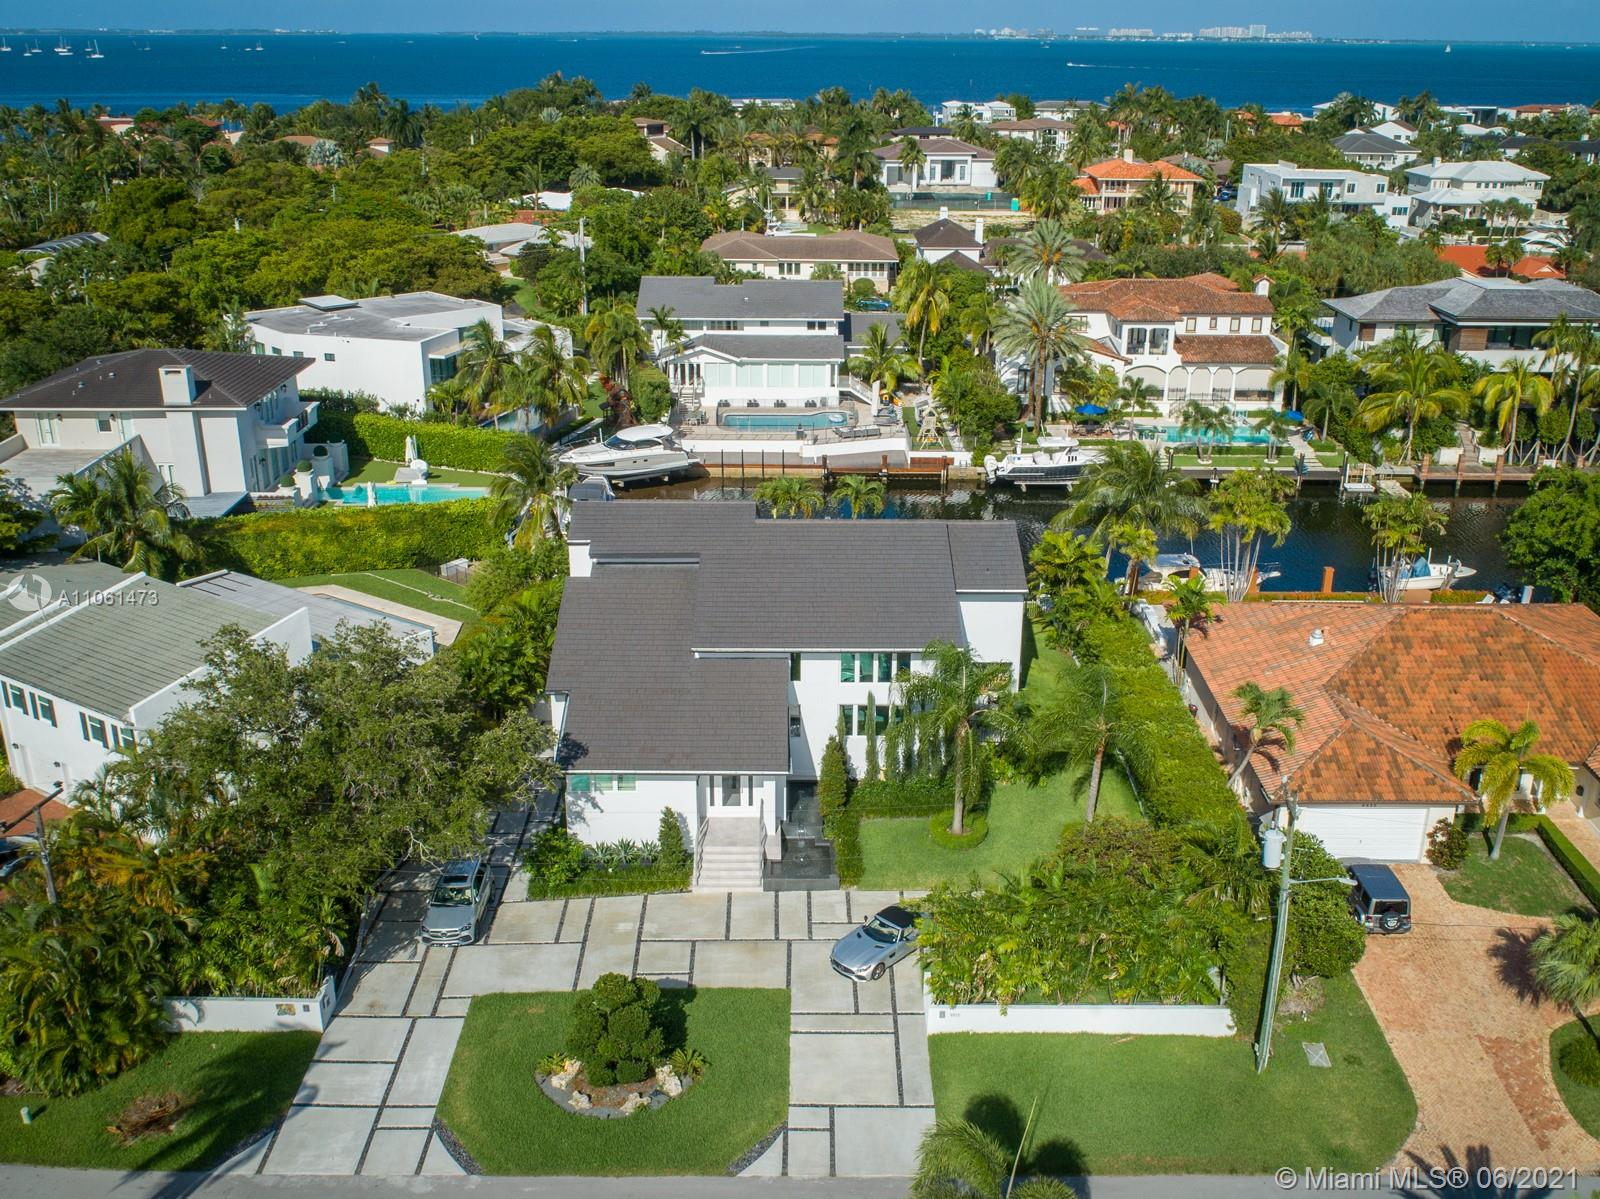 Sunshine, sea breezes and direct ocean access with no bridges to the Bay!!! Enjoy an incredible waterfront Miami lifestyle in this impeccably remodeled 5 bed/5 bath contemporary smart home complete with a 100 ft seawall & boat lift on a wide canal in the guard gated, upscale community of Sunrise Harbour in Coral Gables. From the floors to the roof, everything has been replaced including plumbing, electrical, glass wine room, Italian chef's kitchen and impact glass throughout with pocket sliders that open completely to the terraces & pool inspiring indoor/outdoor entertaining. Features water views, a gym, garage, 2300+ sf of storage and premium location minutes from the Grove, South Miami, great schools and int'l airport. Start the best chapter of your life TODAY in this move-in ready home.